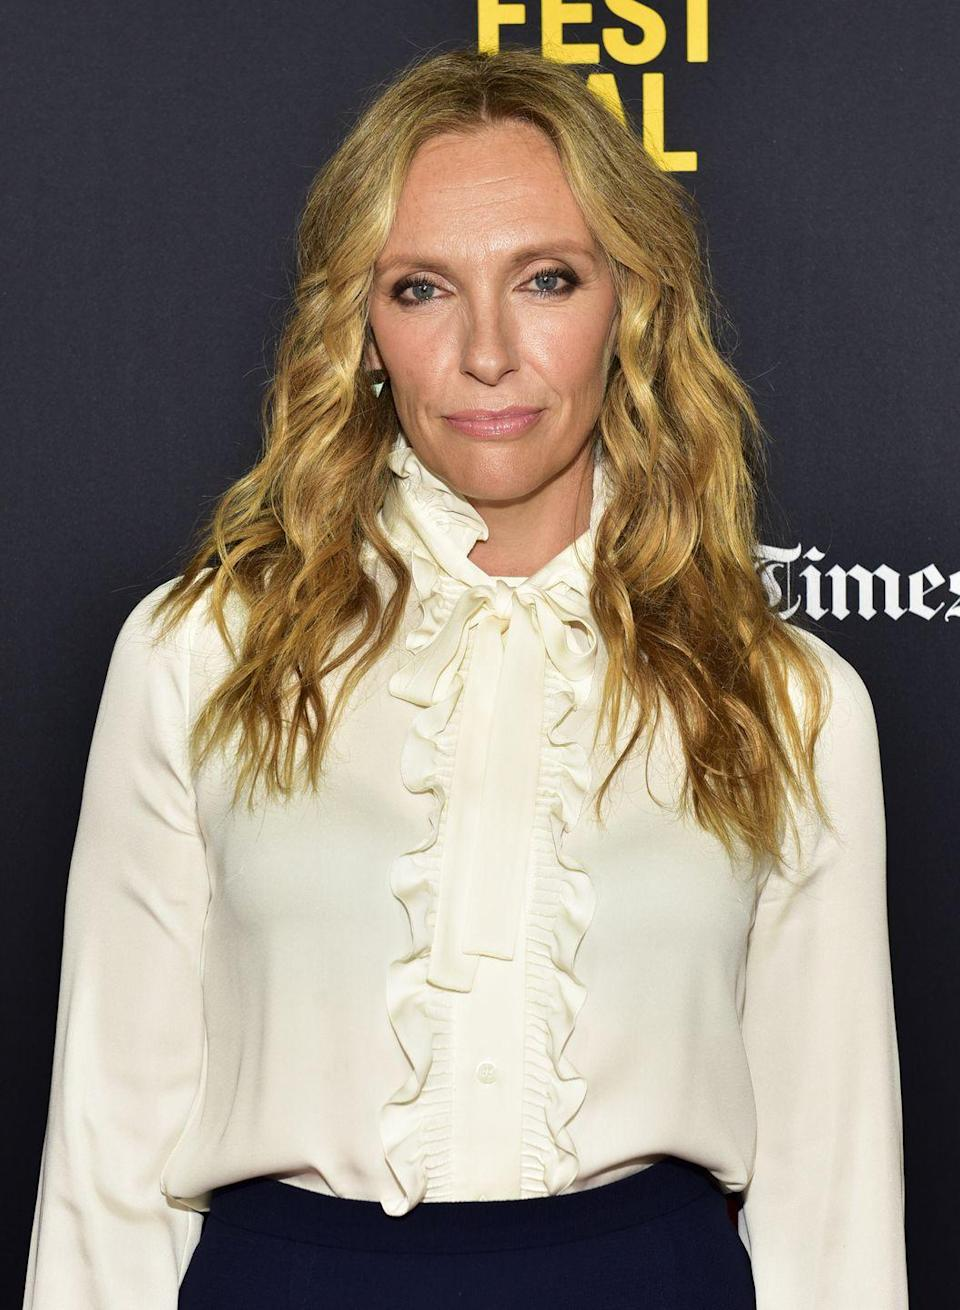 """<p>Toni Collette fronted the pop group Toni Collette and The Finish in her native Australia. Her husband, Dave Galafassi, was also in the group. Toni wrote and composed all 11 tracks for the band's album, <a href=""""https://open.spotify.com/album/3CdofbhP7OJhu6Xaa9erIM?si=b9YdlkPAS4eW1I8q4eXahQ"""" rel=""""nofollow noopener"""" target=""""_blank"""" data-ylk=""""slk:Beautiful Awkward Pictures"""" class=""""link rapid-noclick-resp""""><em>Beautiful Awkward Pictures</em></a>.</p>"""